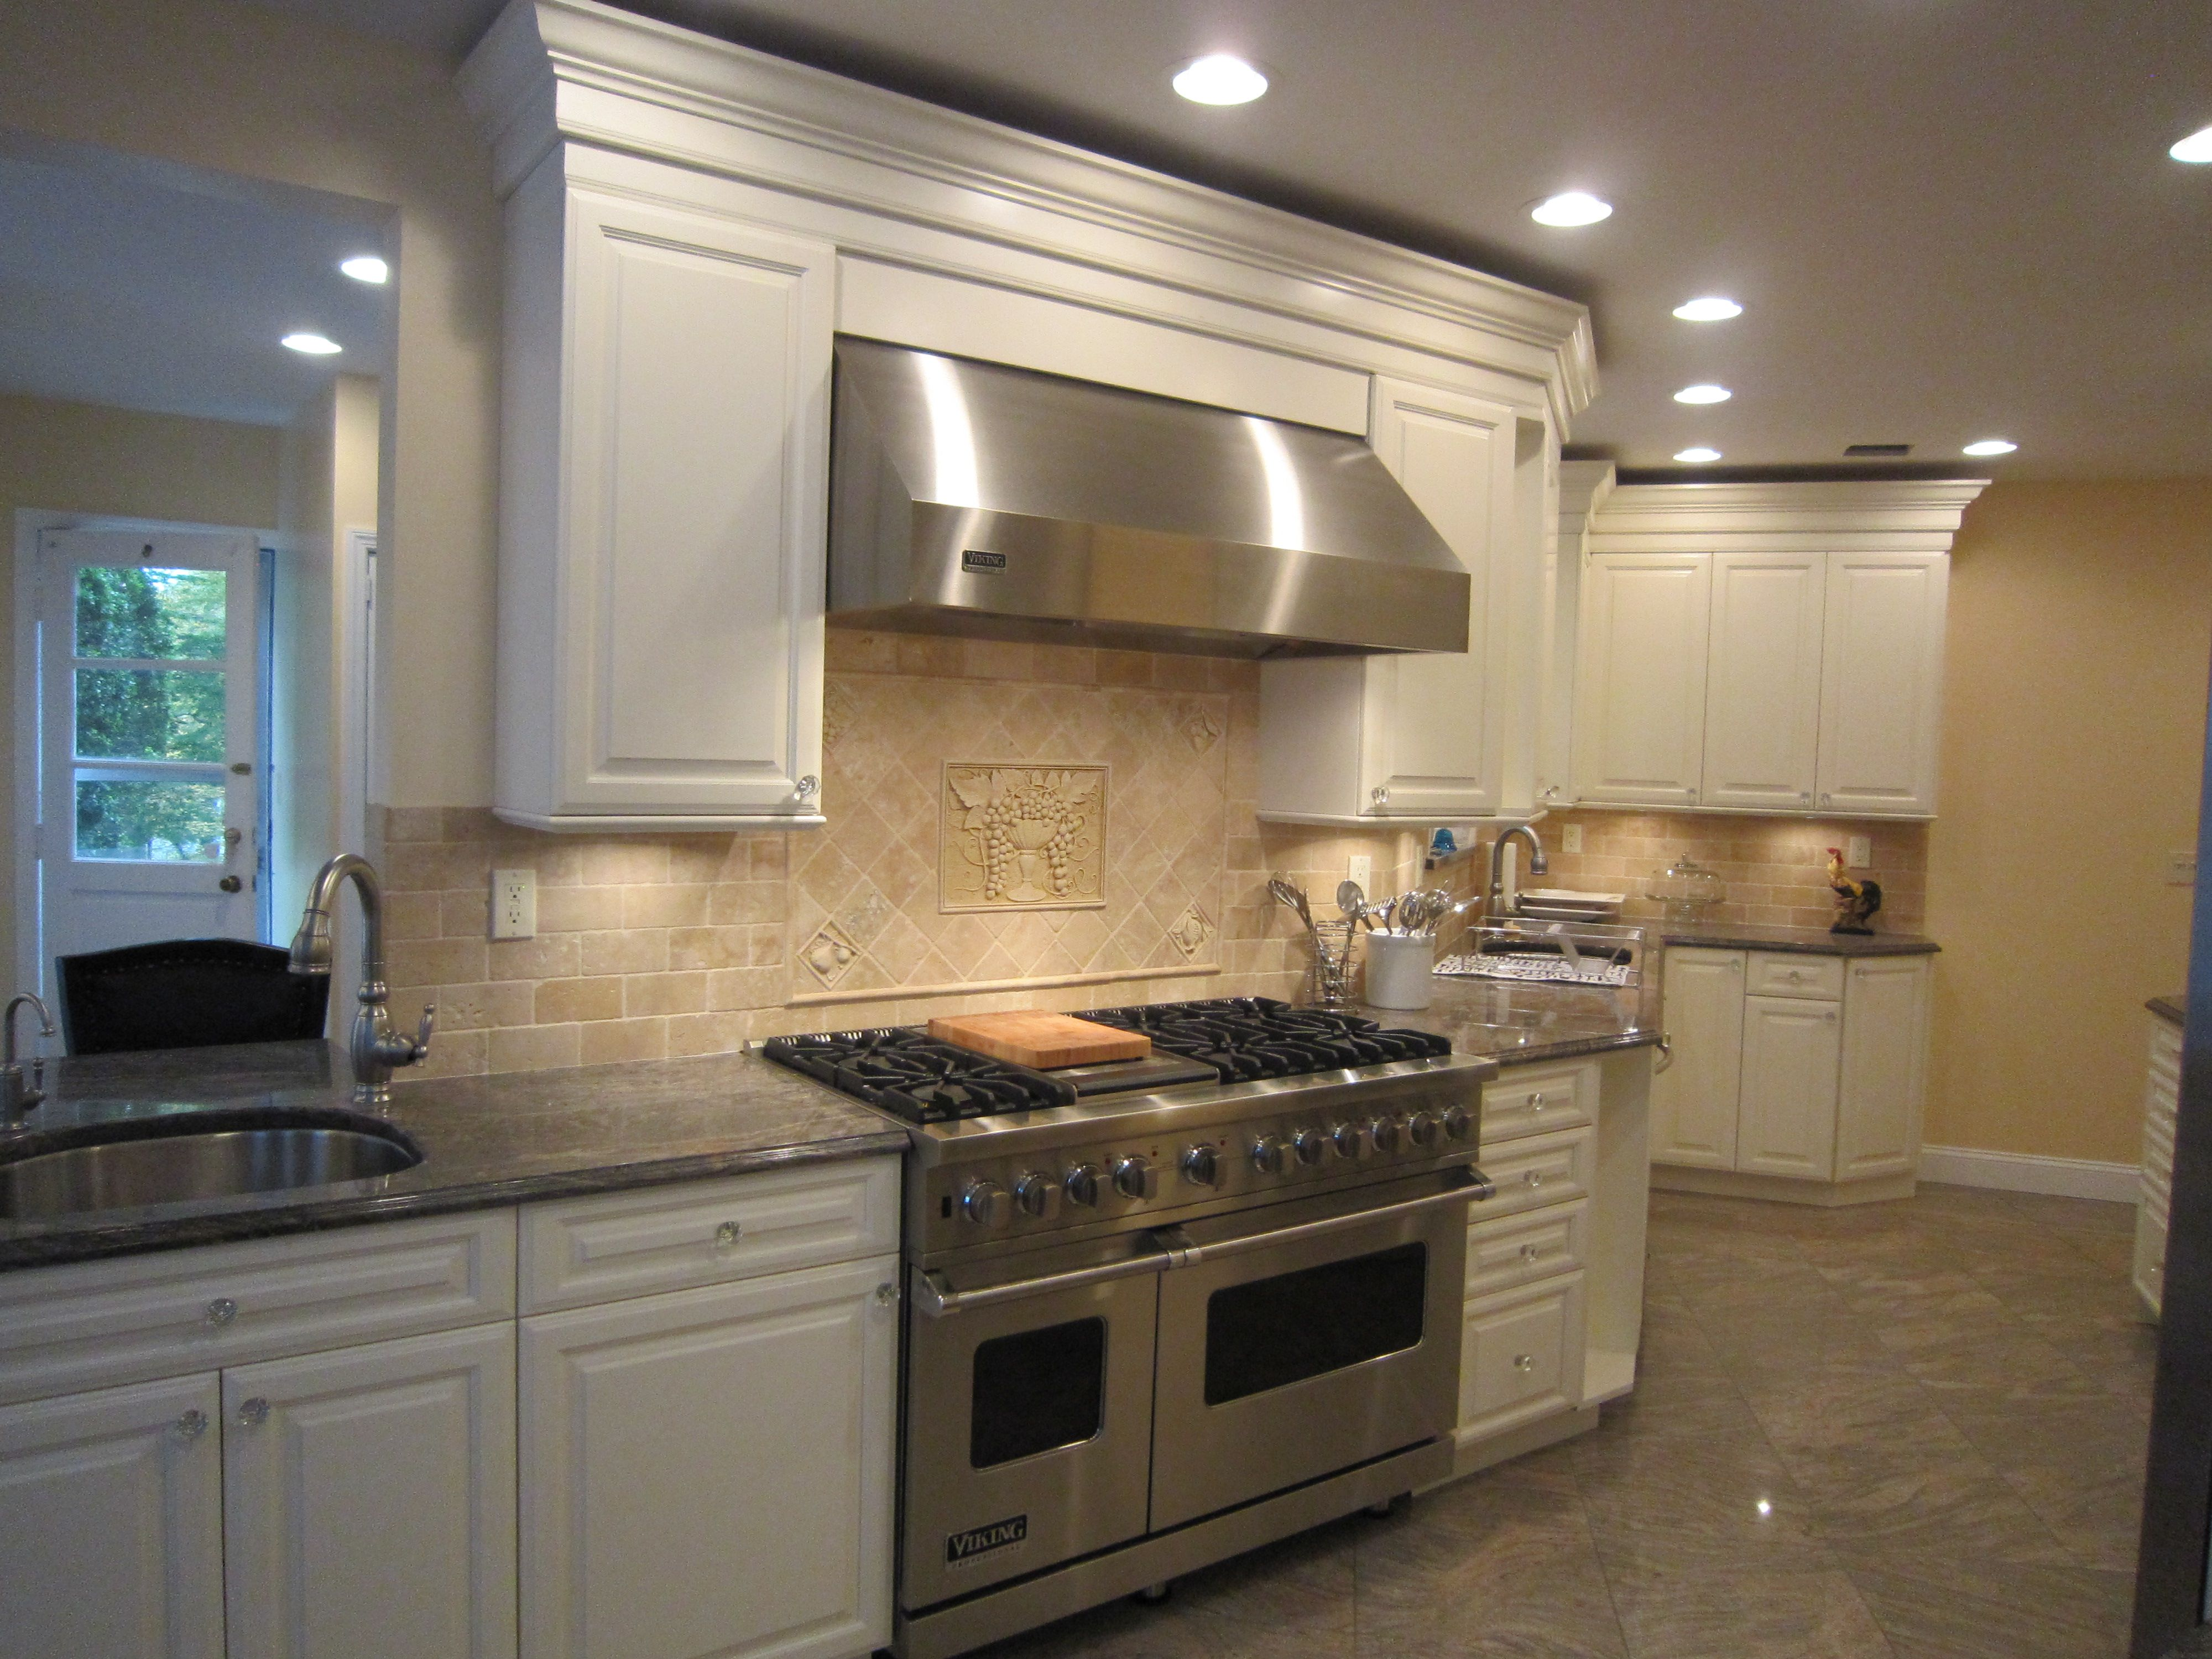 Majestic Kitchens and Bath - Serving Westchester County, NY ...